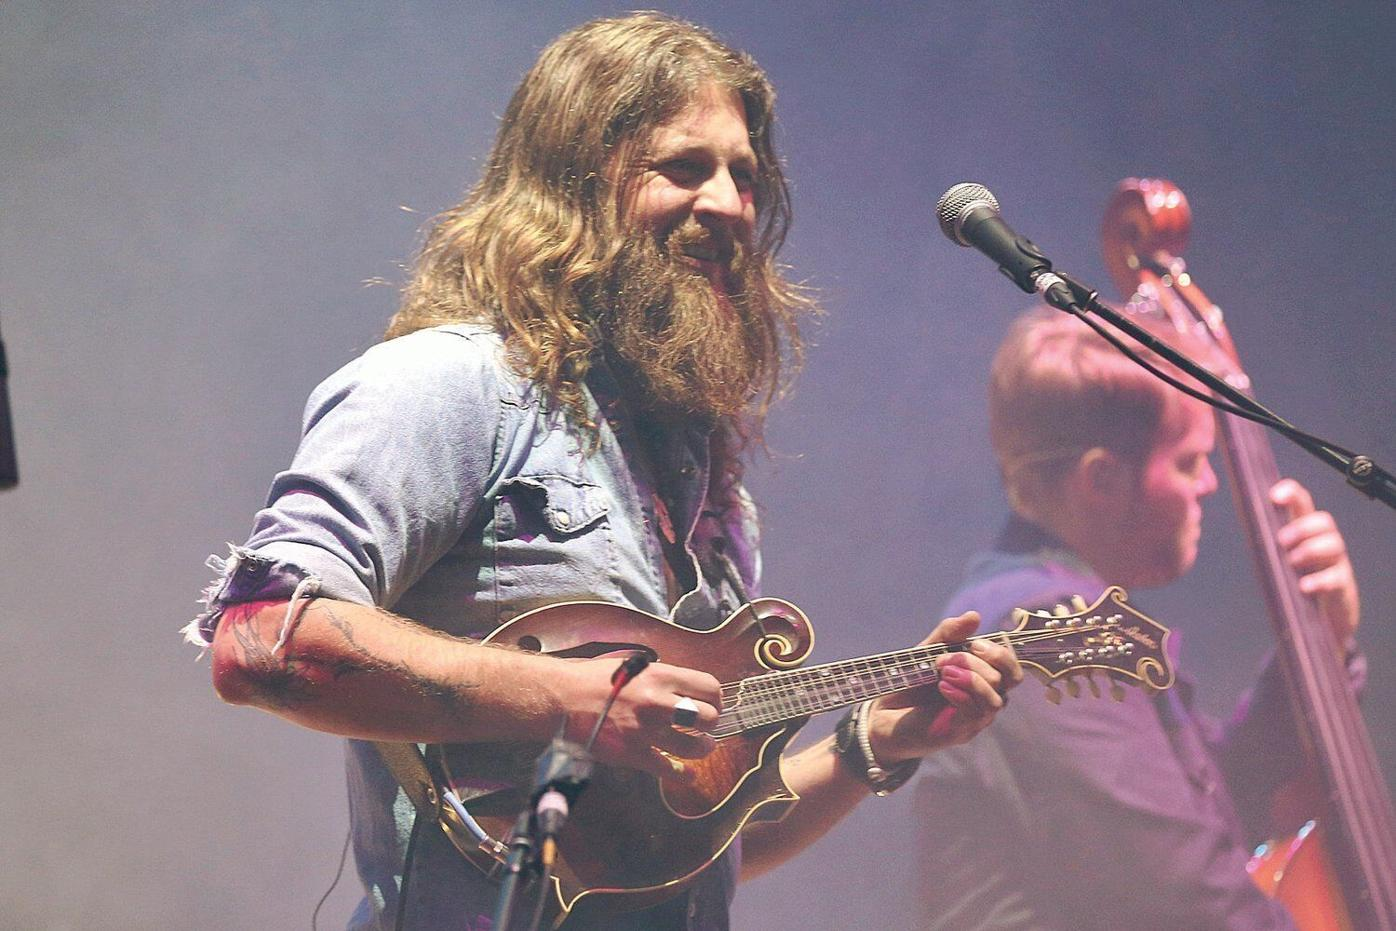 Greensky Bluegrass covers more than one patch of musical terrain